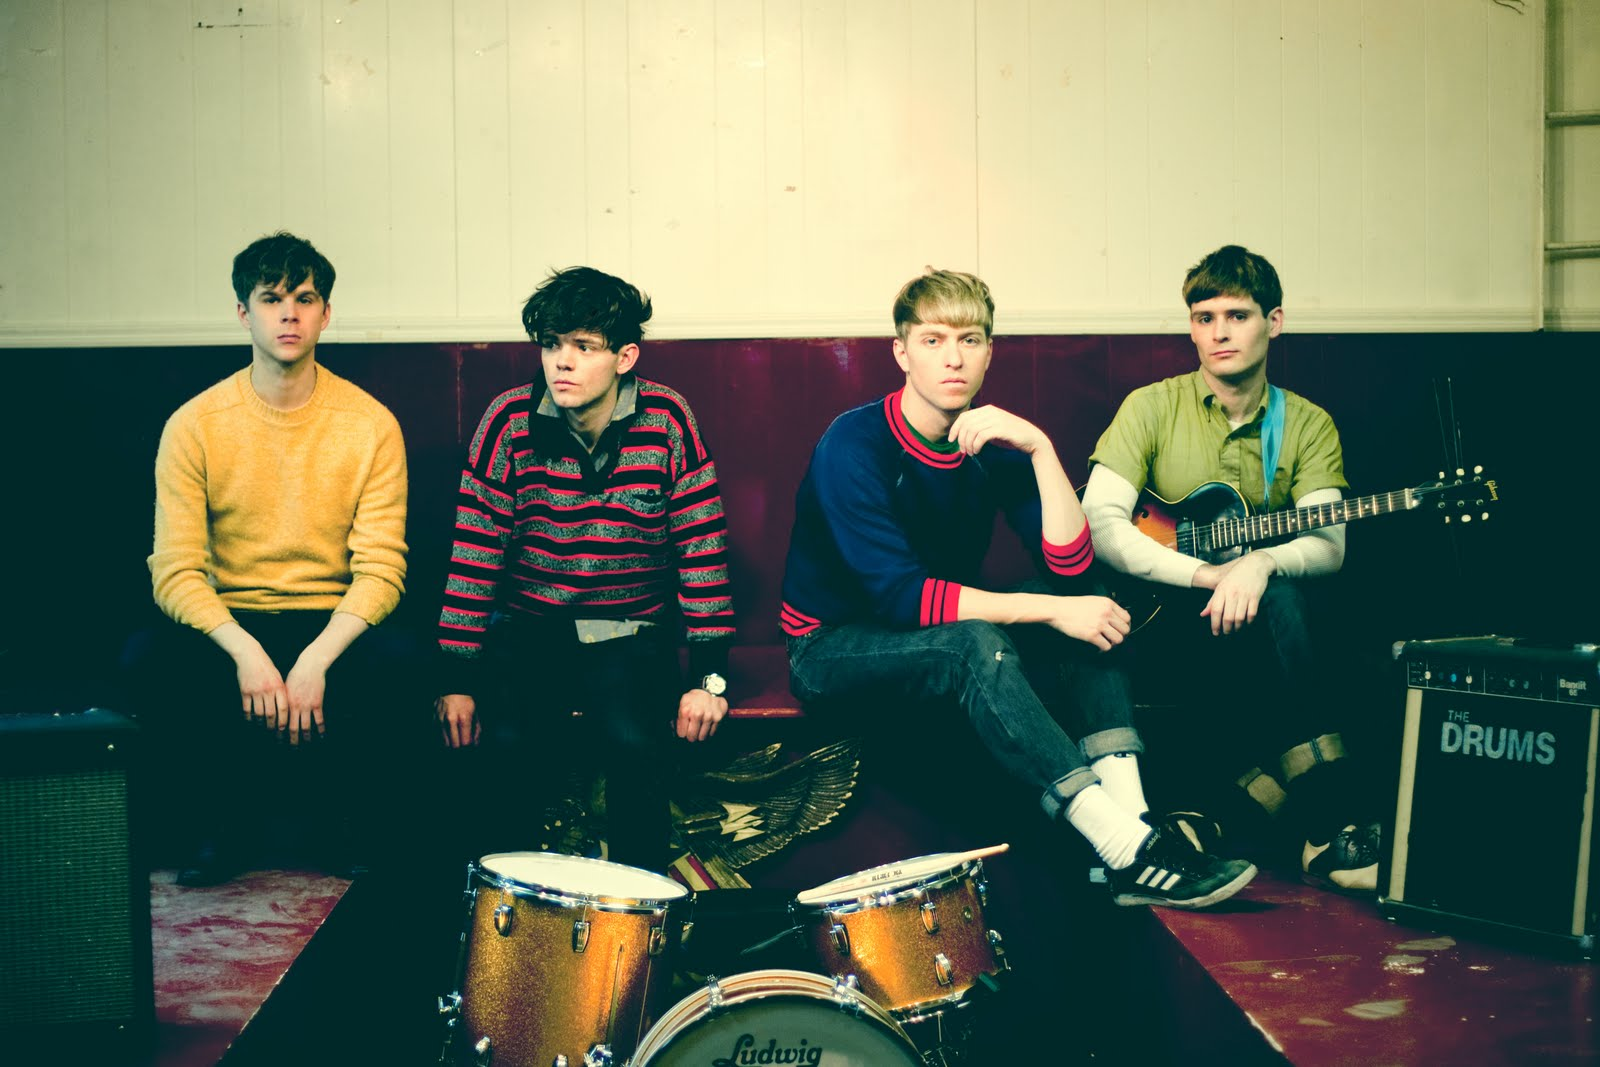 The Drums/Money